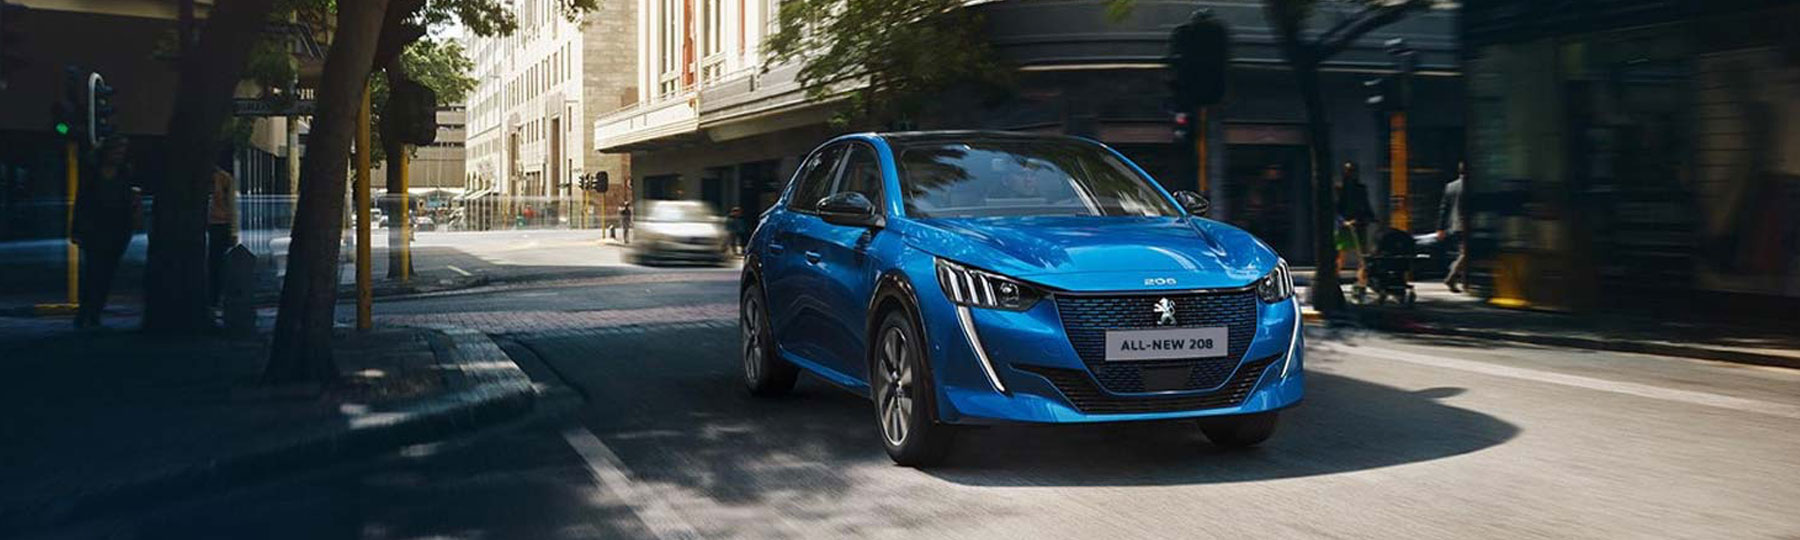 All-new Peugeot 208 Business Offer